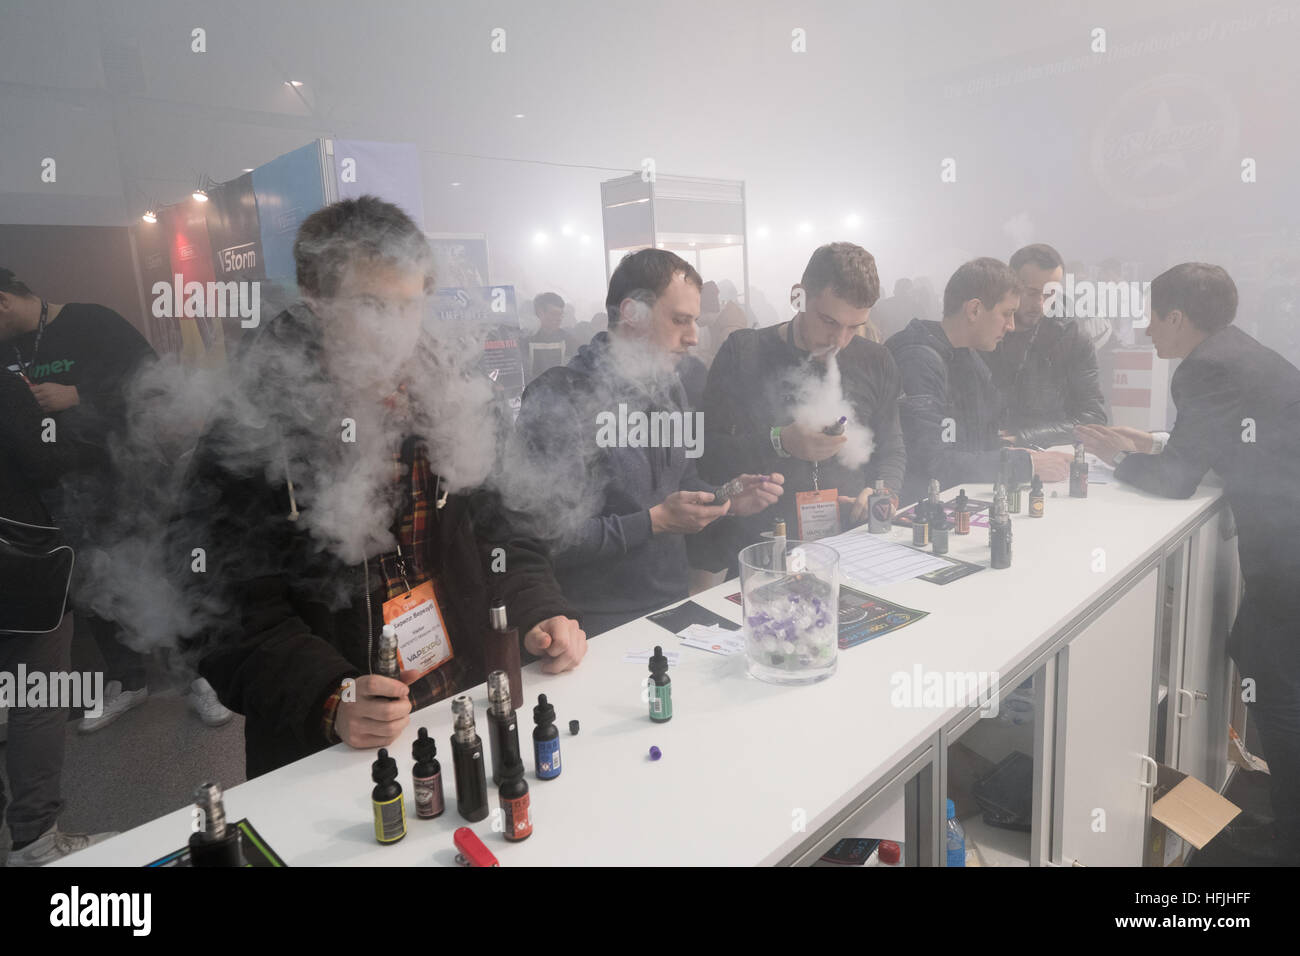 People attend Vapexpo Moscow 2016 exhibition - Stock Image